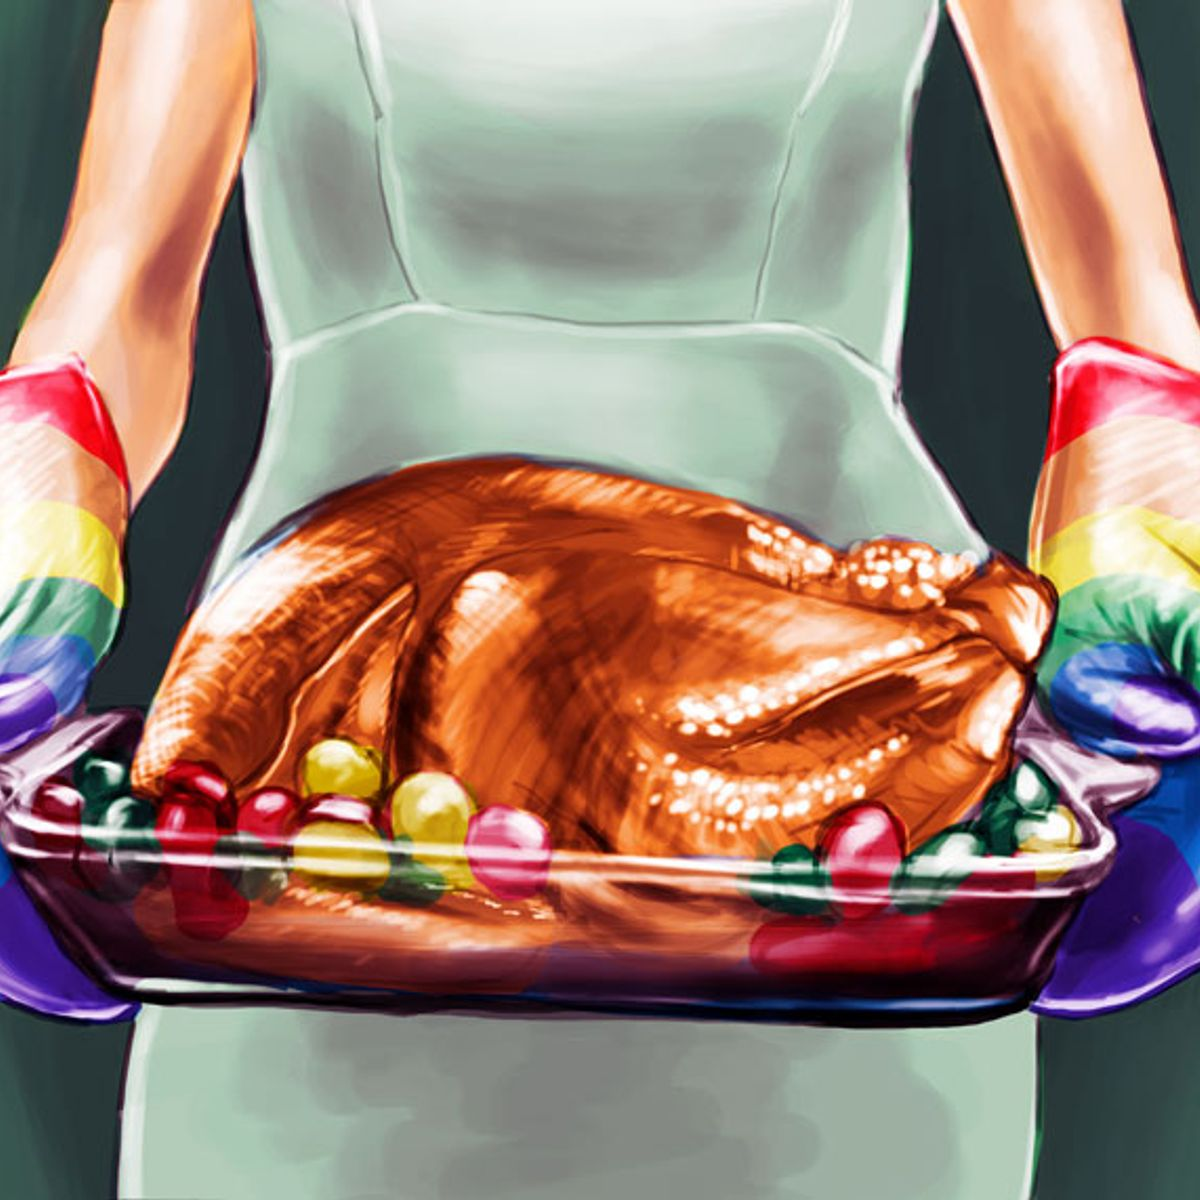 The Thanksgiving this vegetarian finally gave in and cooked a turkey